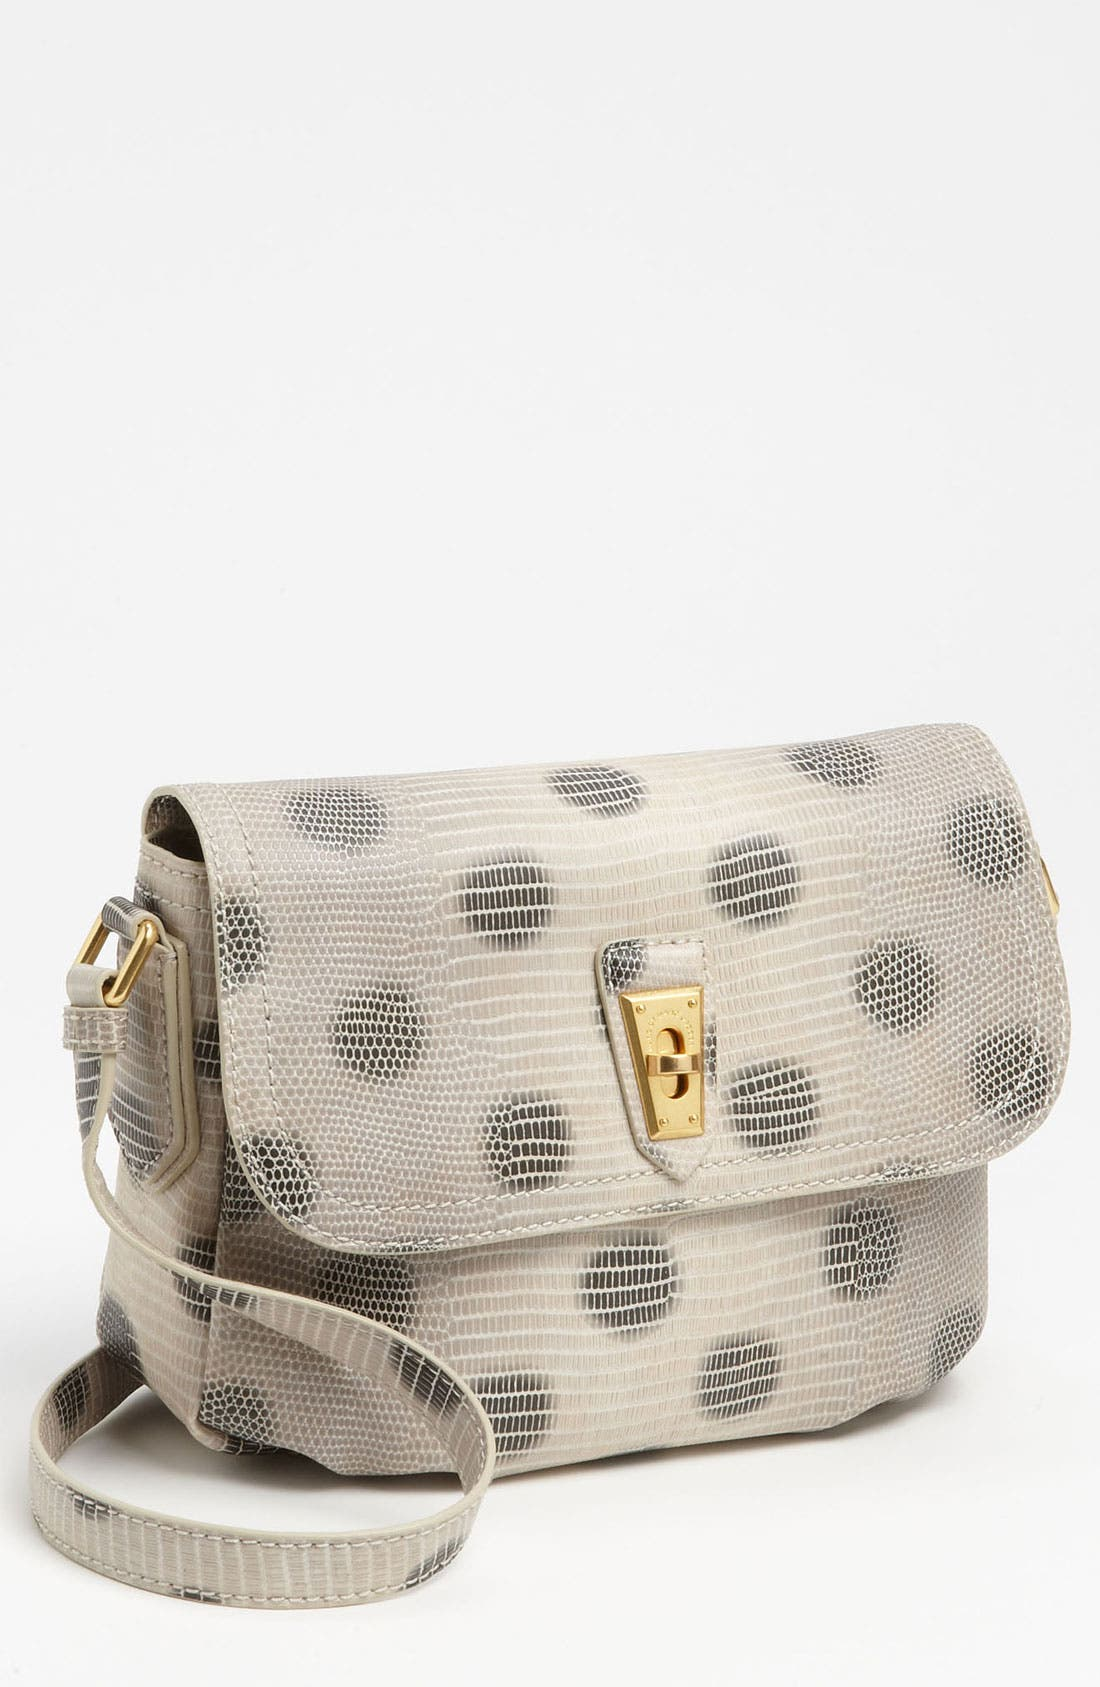 Main Image - MARC BY MARC JACOBS 'Lizzie Dots' Embossed Crossbody Bag